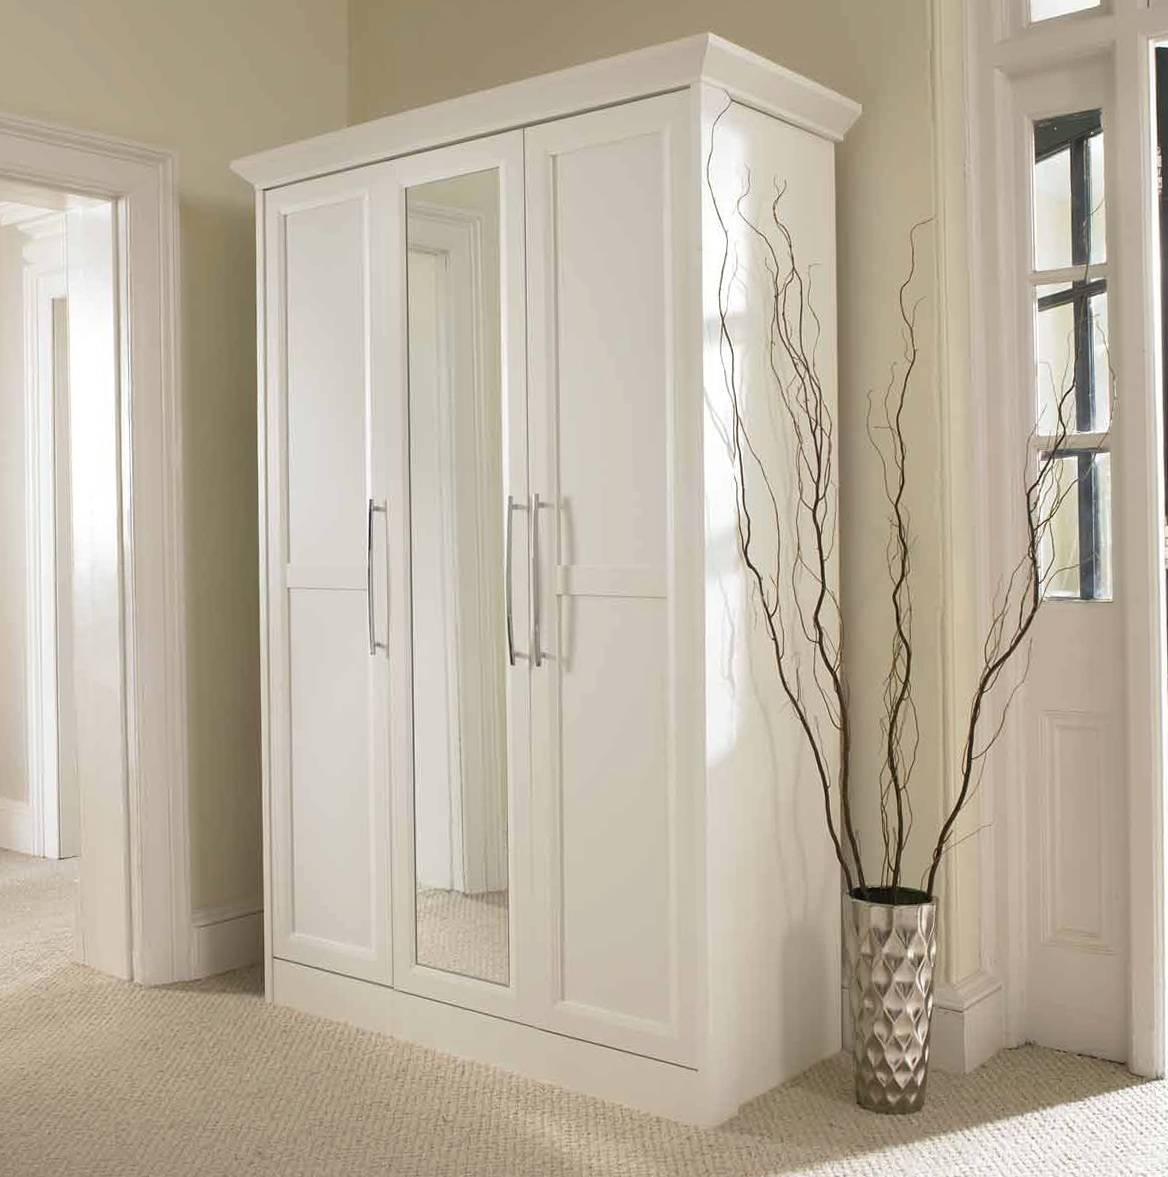 Sofa Wardrobe Closet With Mirror Doors Mirrored | Winafrica within White Mirrored Wardrobes (Image 12 of 15)